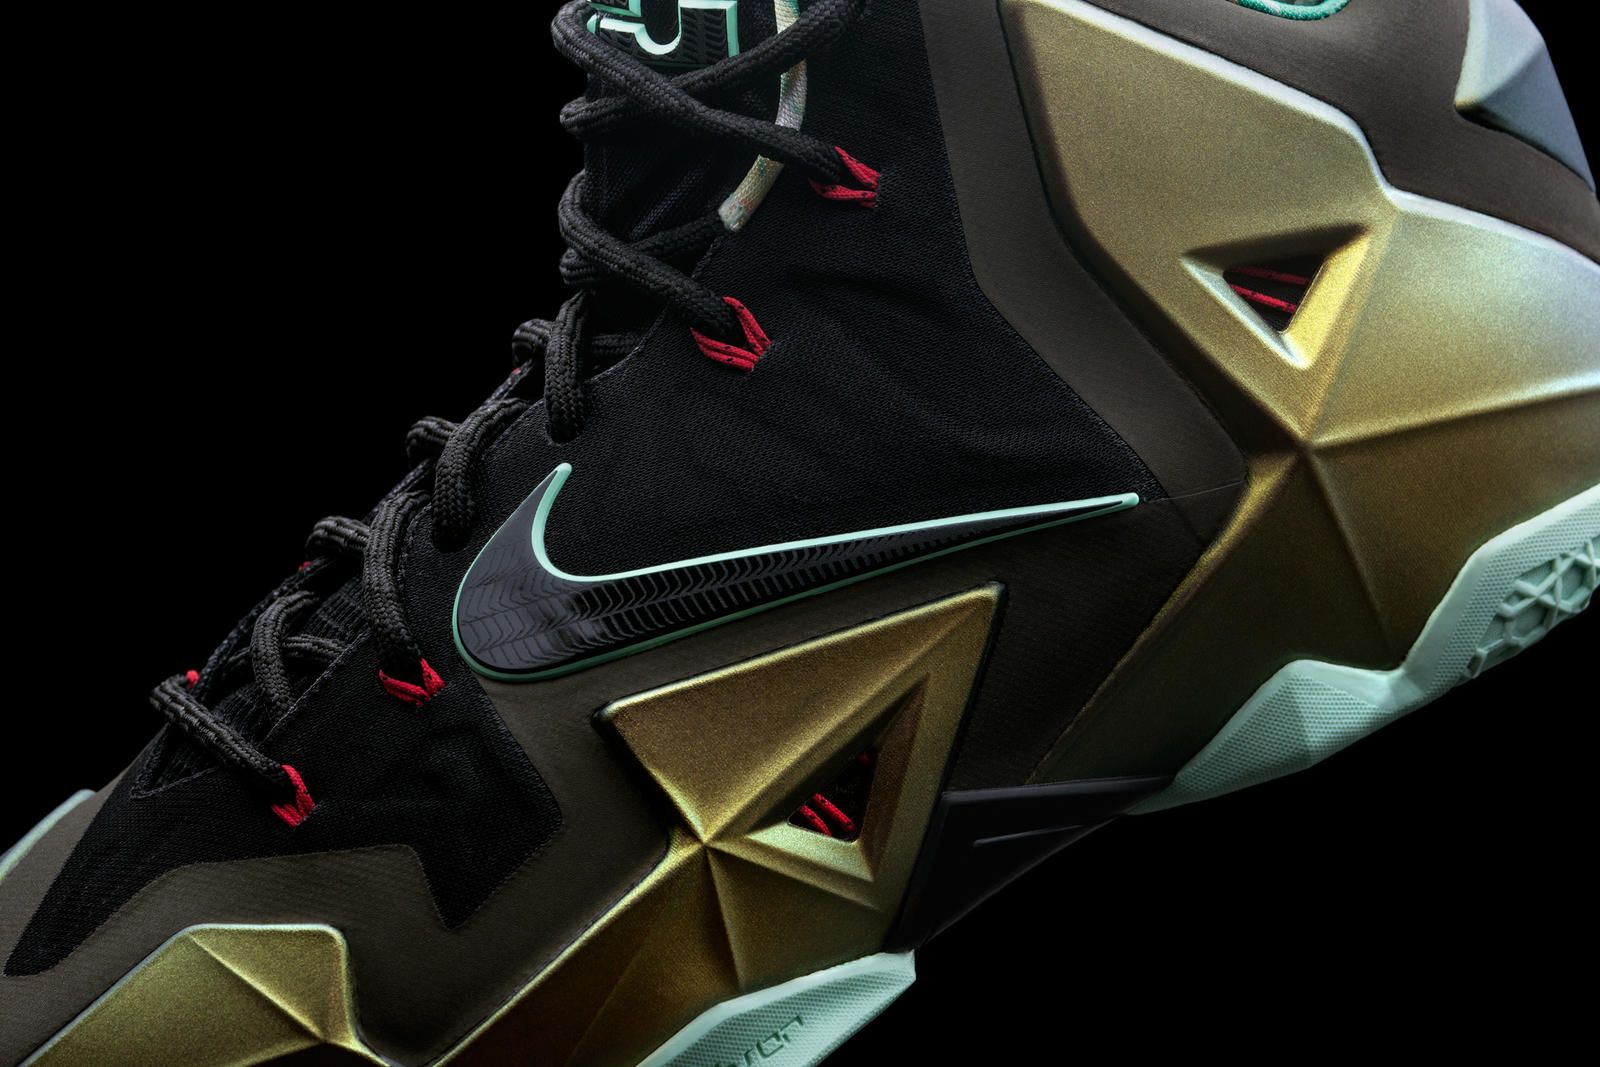 b8b059ed3258c Nike News - LEBRON 11 Provides a Protective Suit for LeBron James s  Powerful Precision